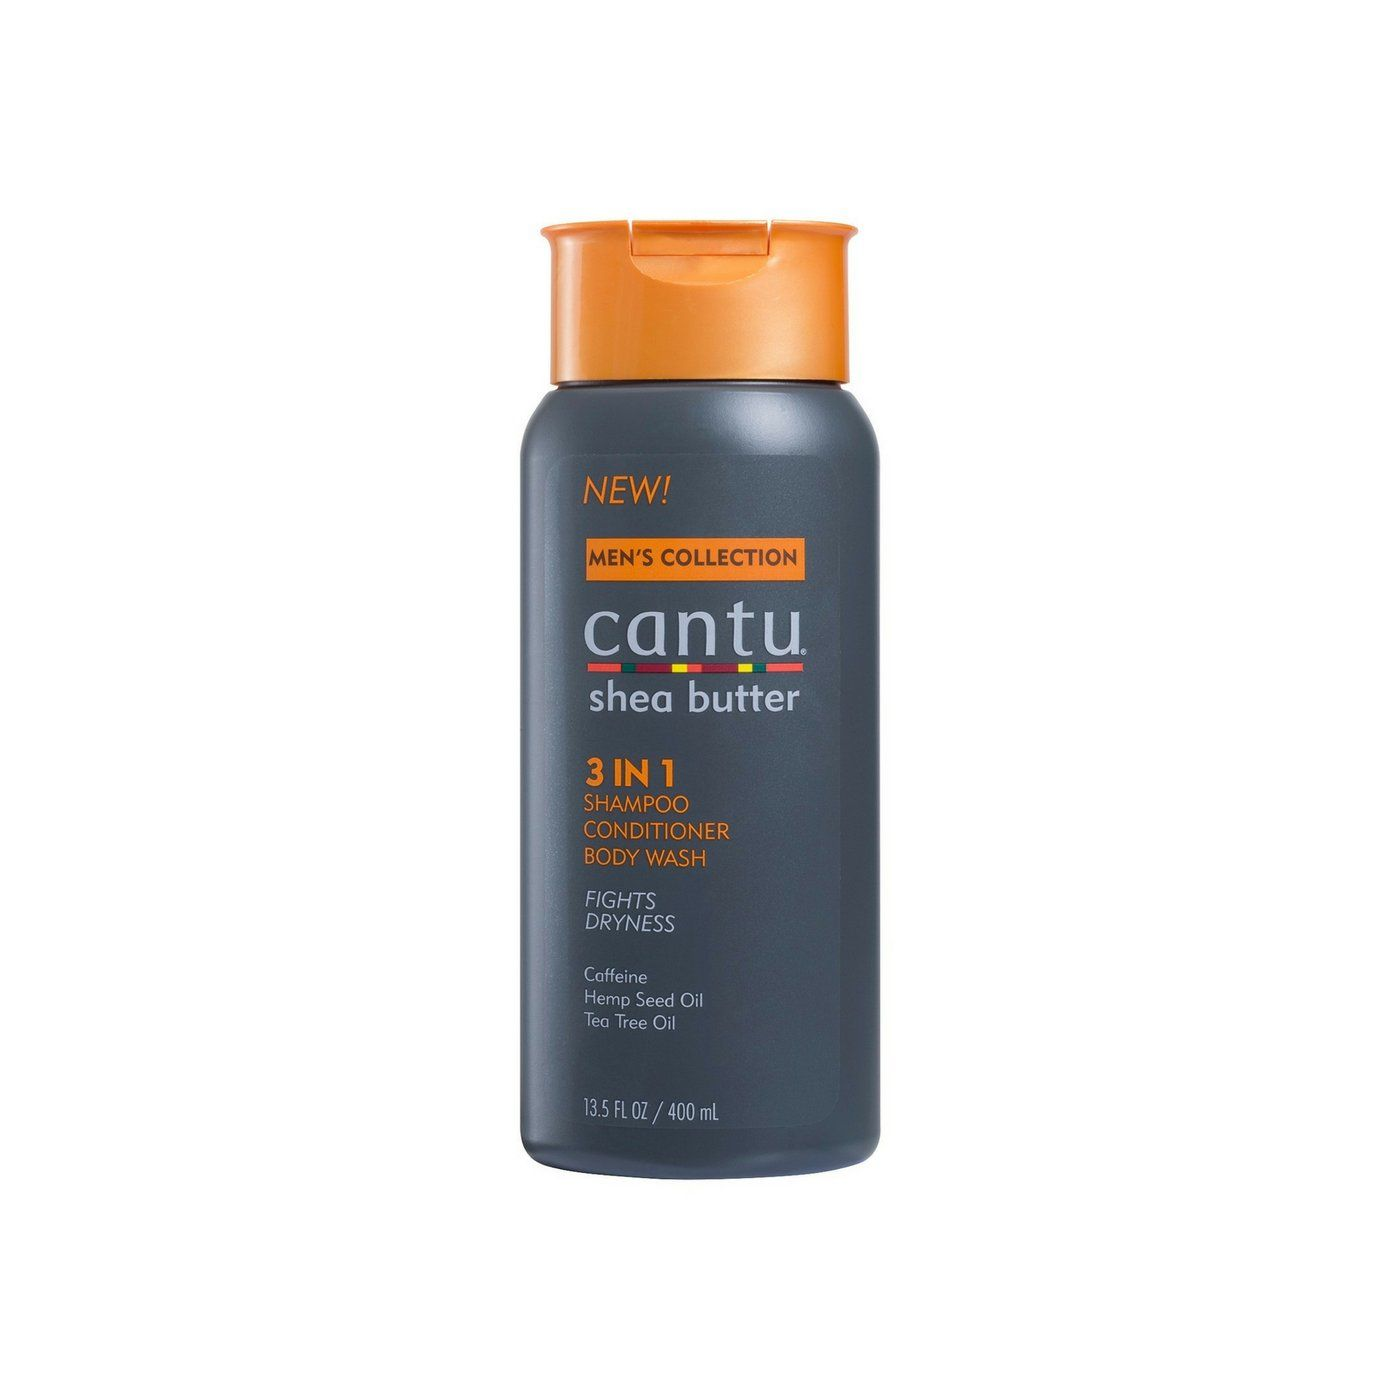 Cantu Men 3 in 1 Shampoo Conditioner Body Wash